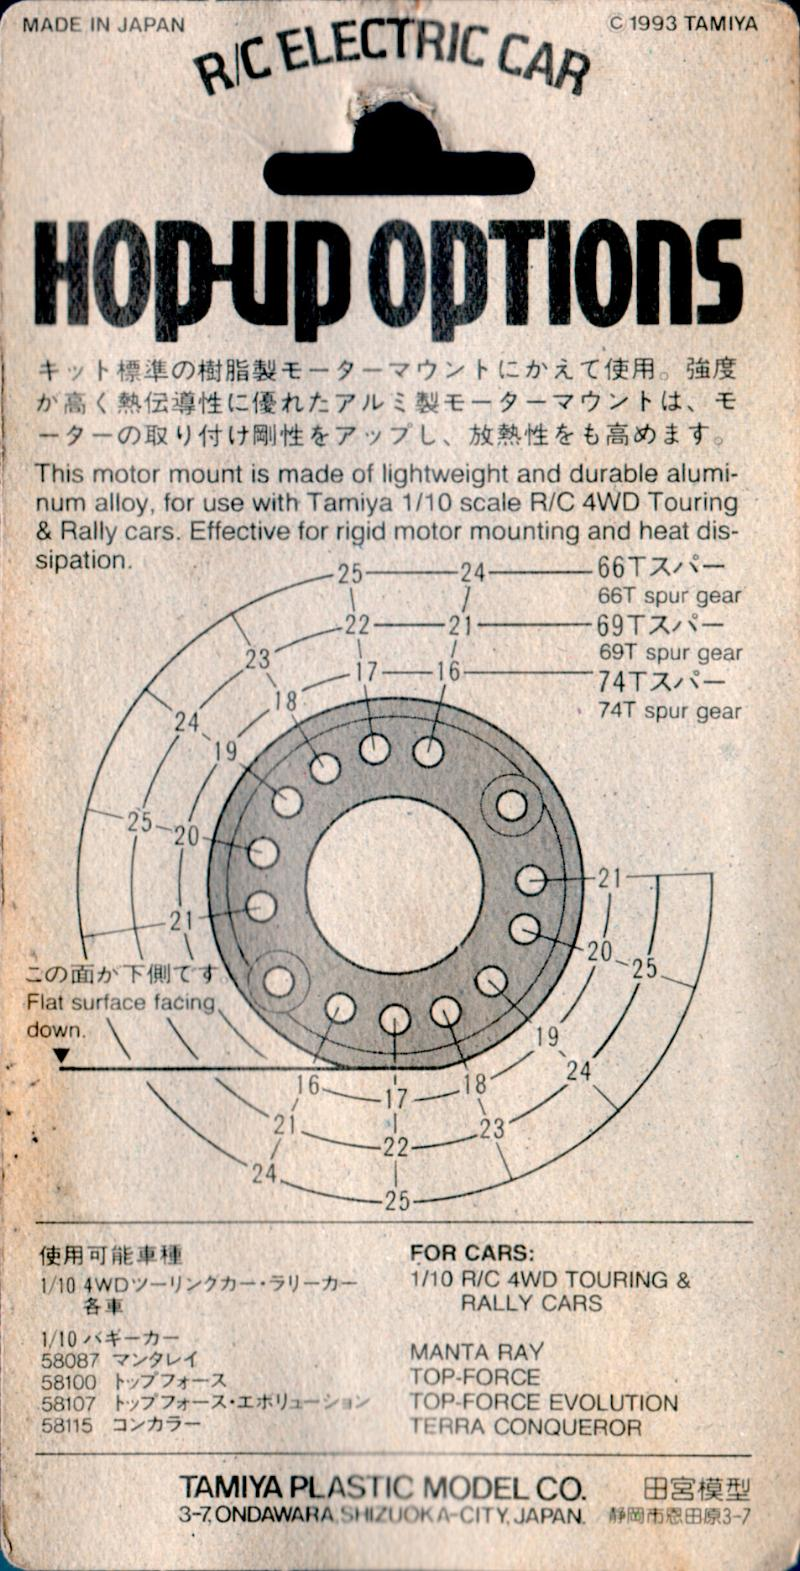 Vintage article: Instructions for 53142 Manta Ray alloy motor mount